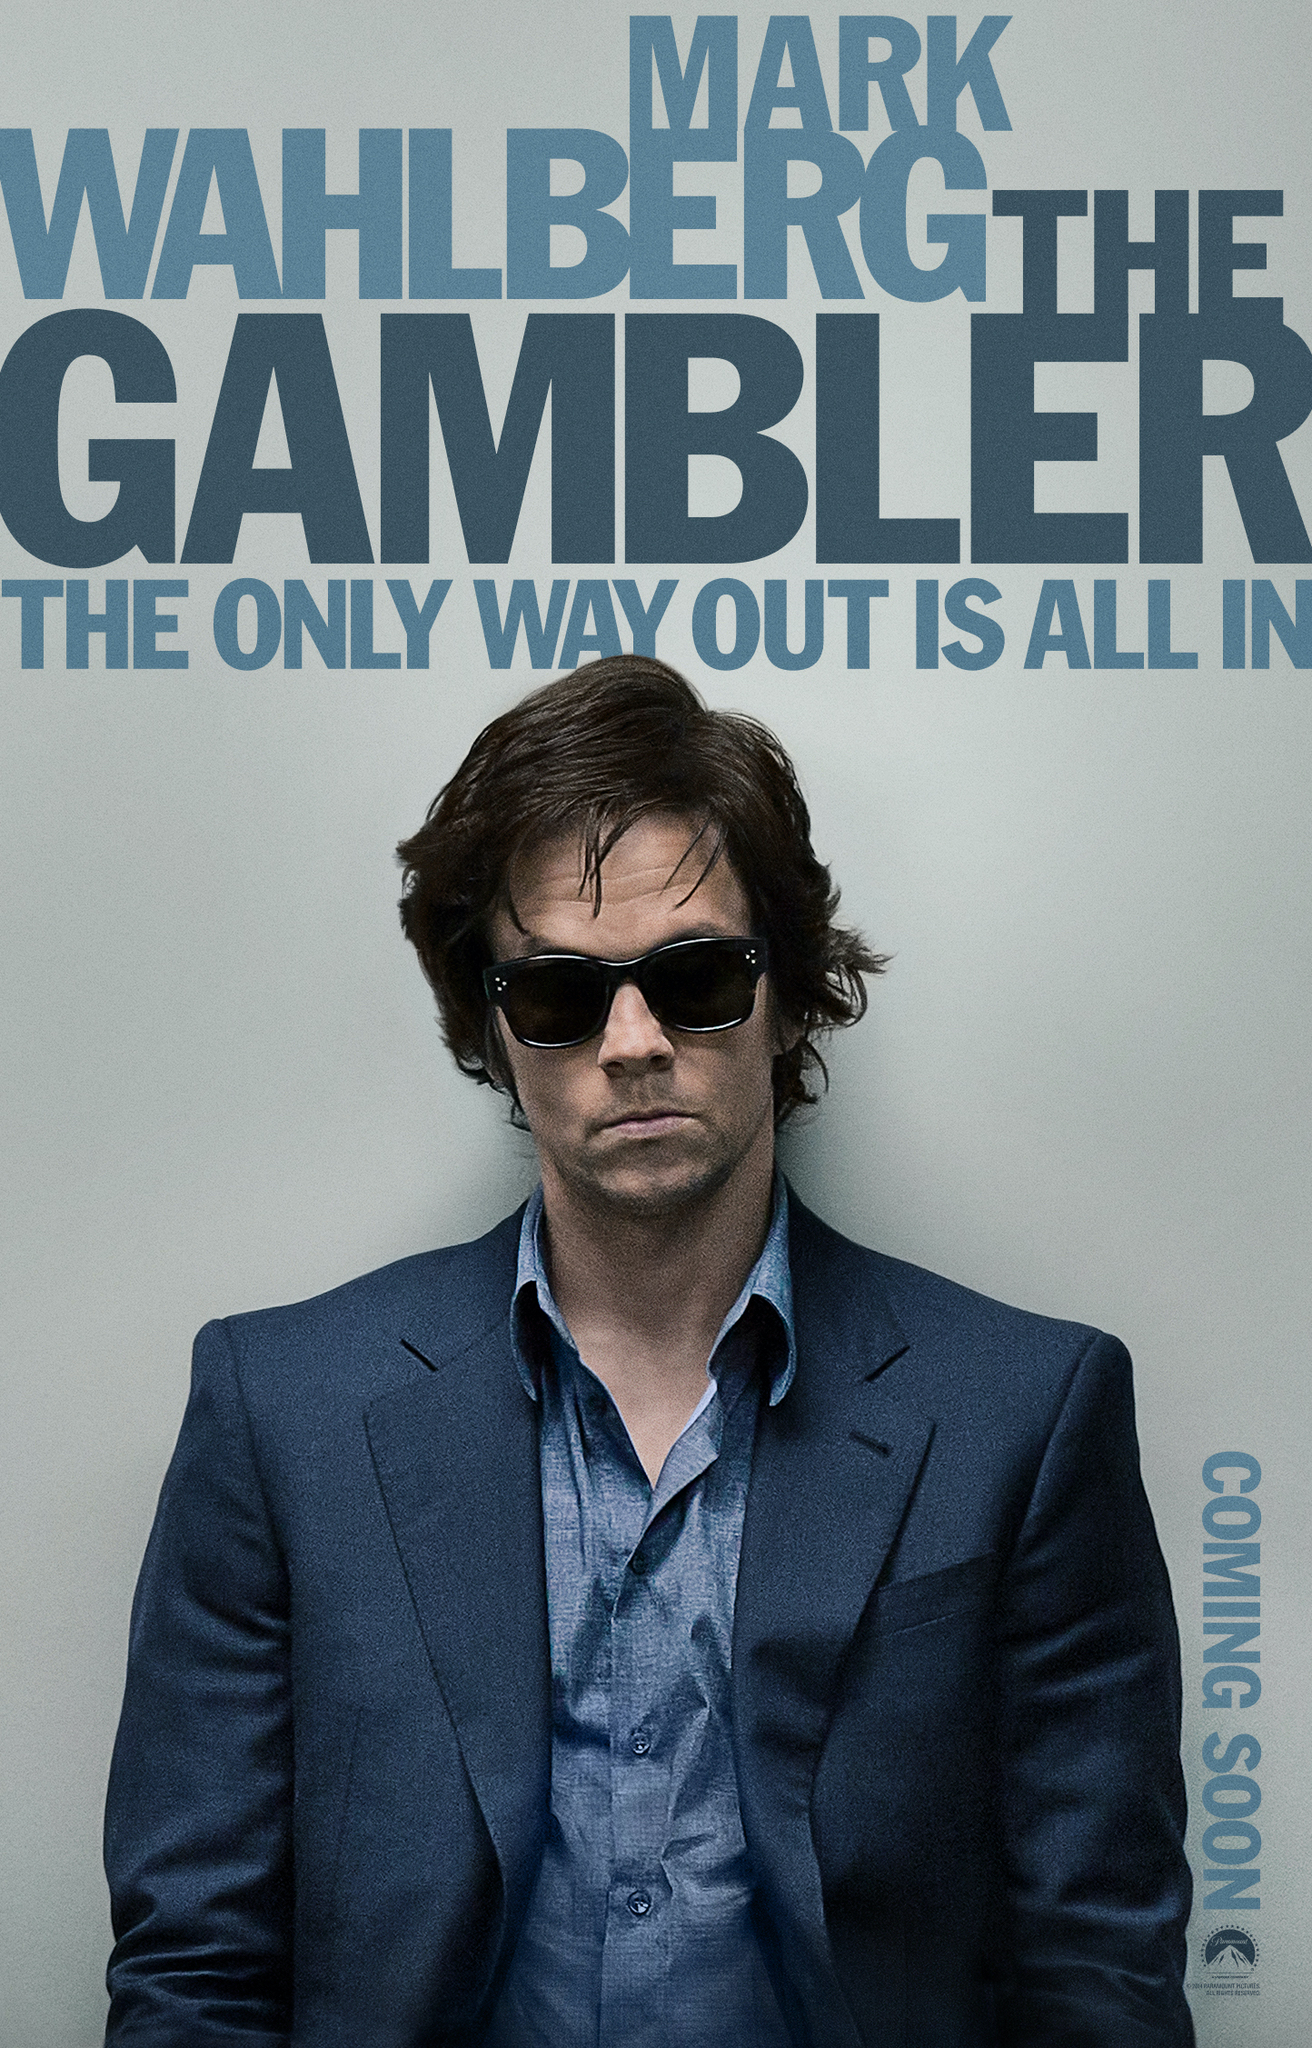 'The Gambler' is a crime thriller film directed by Rupert Wyatt. Here's a rather interesting review of Mark Wahlberg in 'The Gambler'.